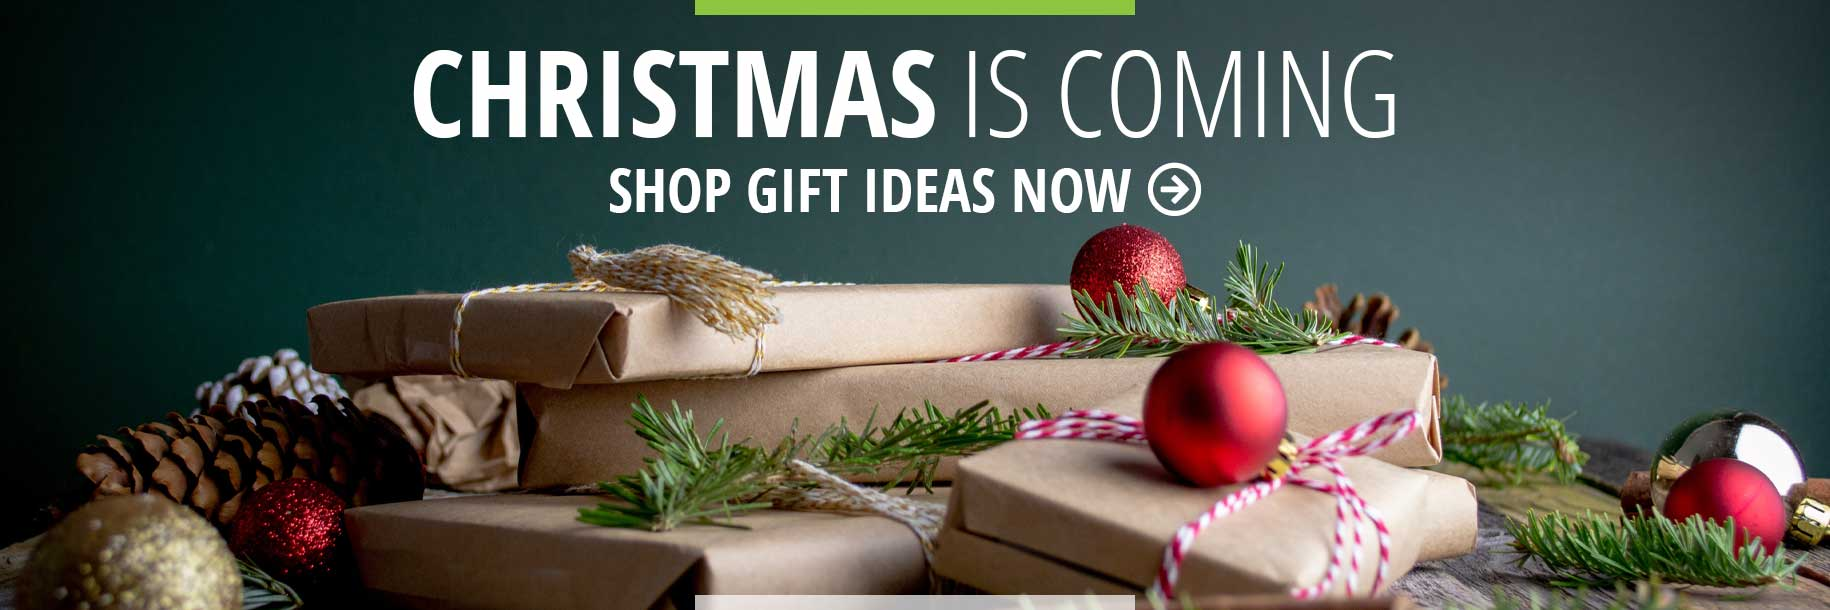 Christmas is coming - shop gift ideas and savings now